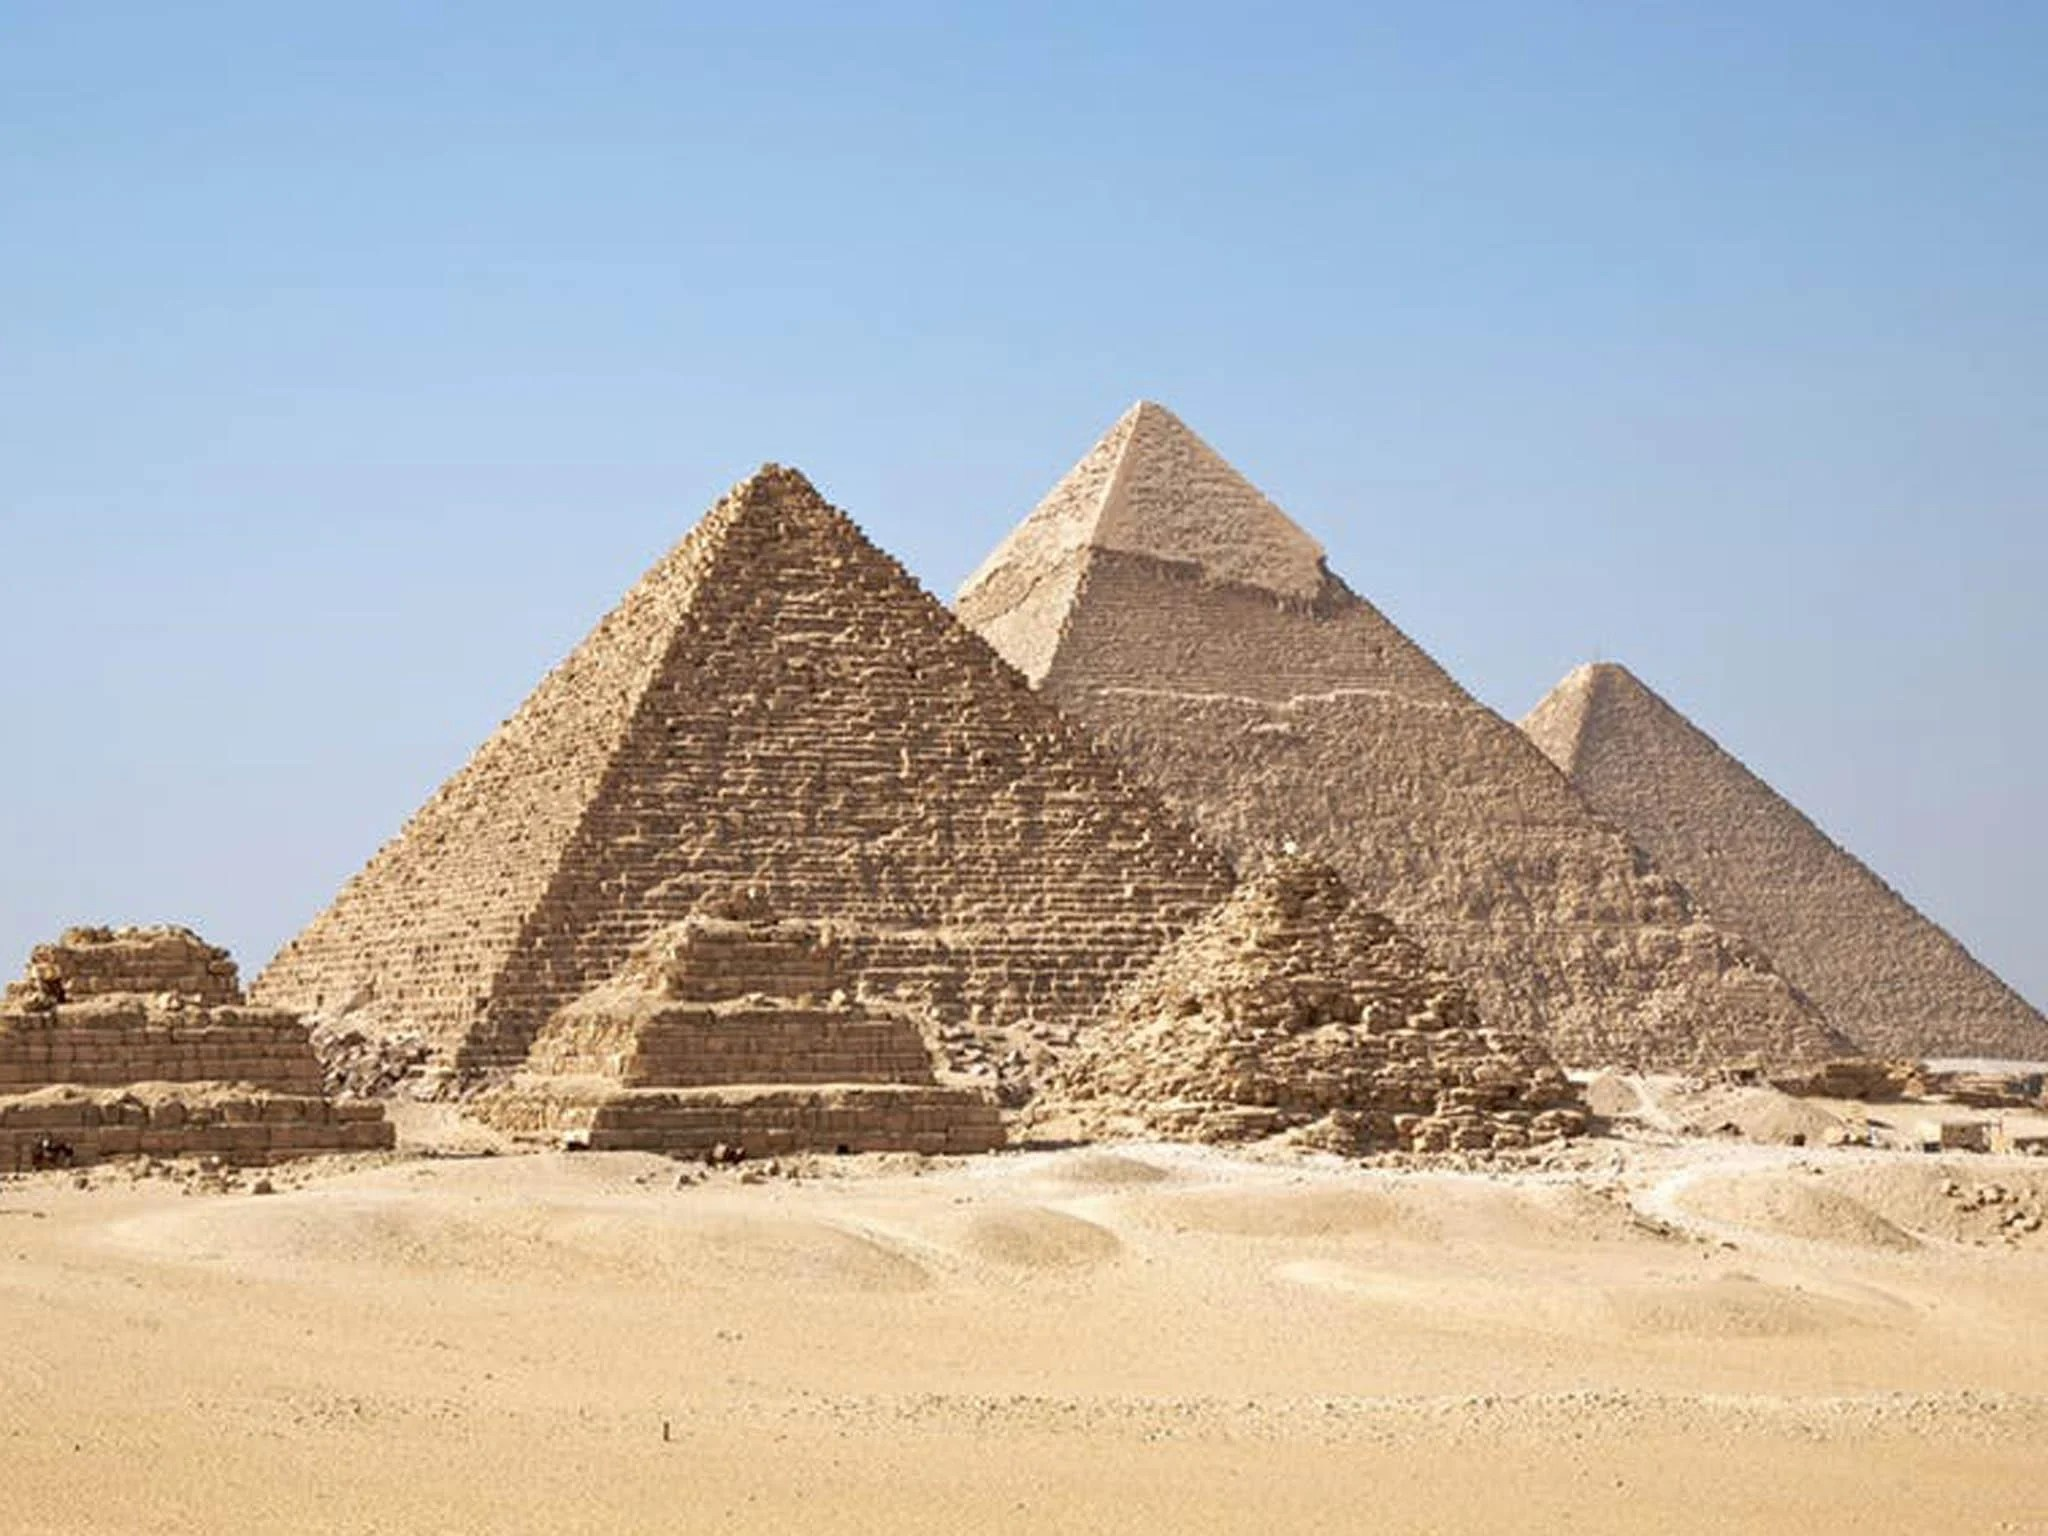 Astronomy Can Help Us Understand How Ancient Egyptians Built The Pyramids